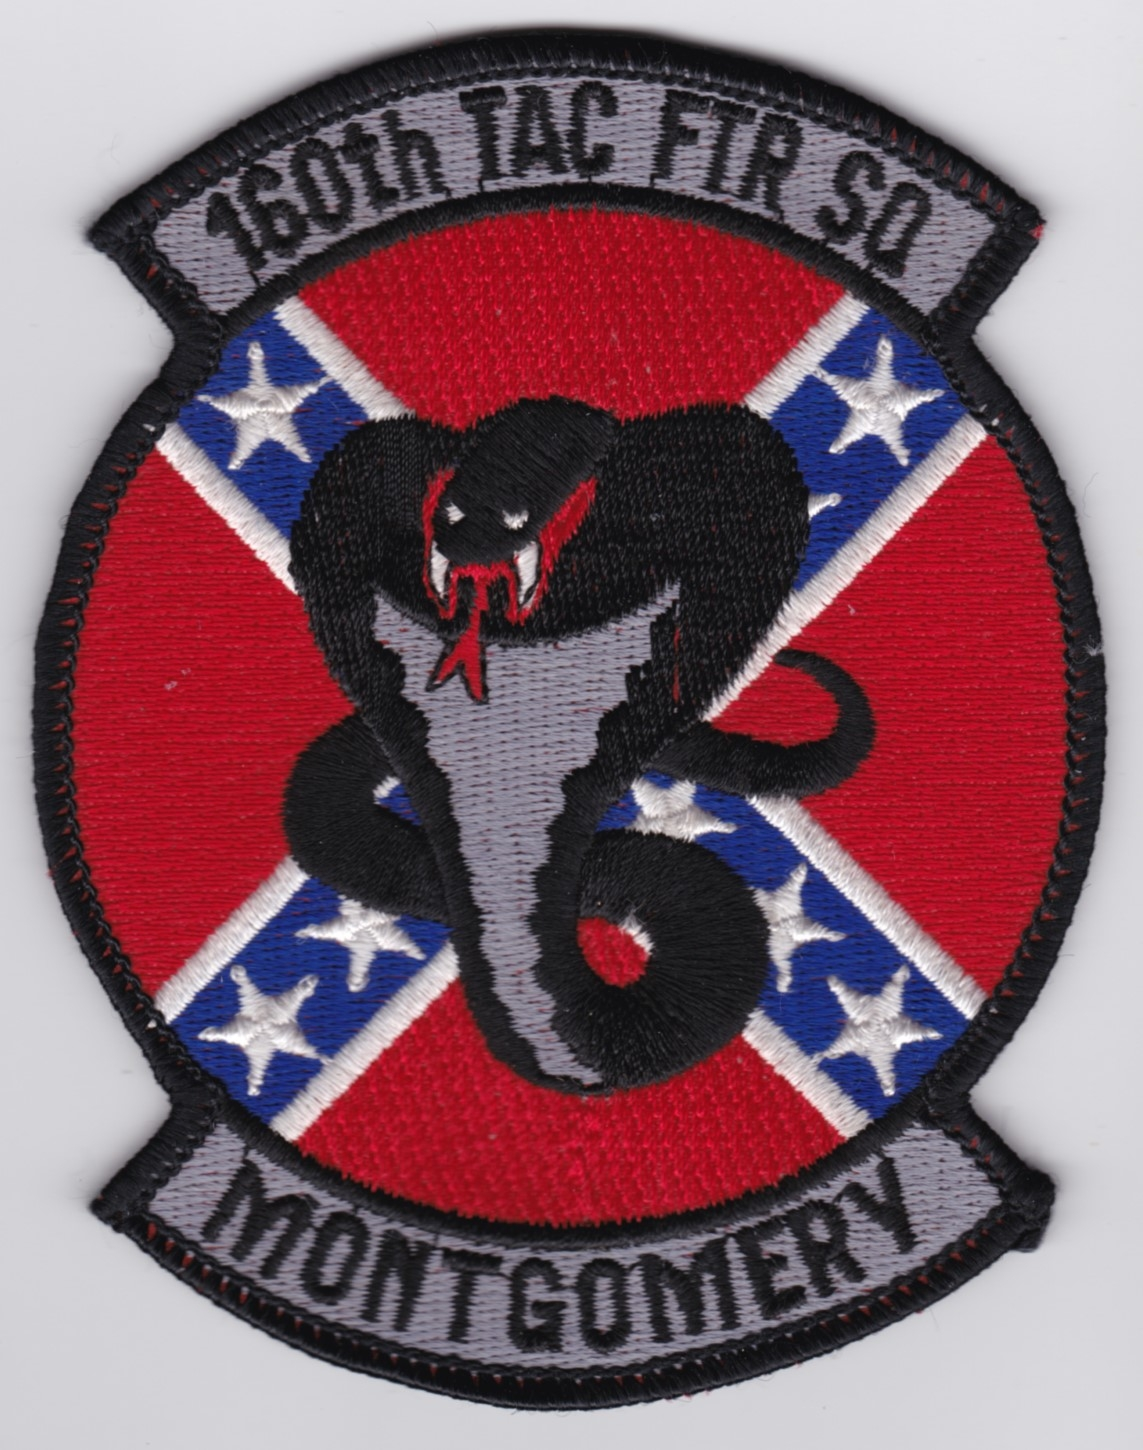 USAF Patch ANG 160 TFS Tactical Fighter Squadron F 16 b